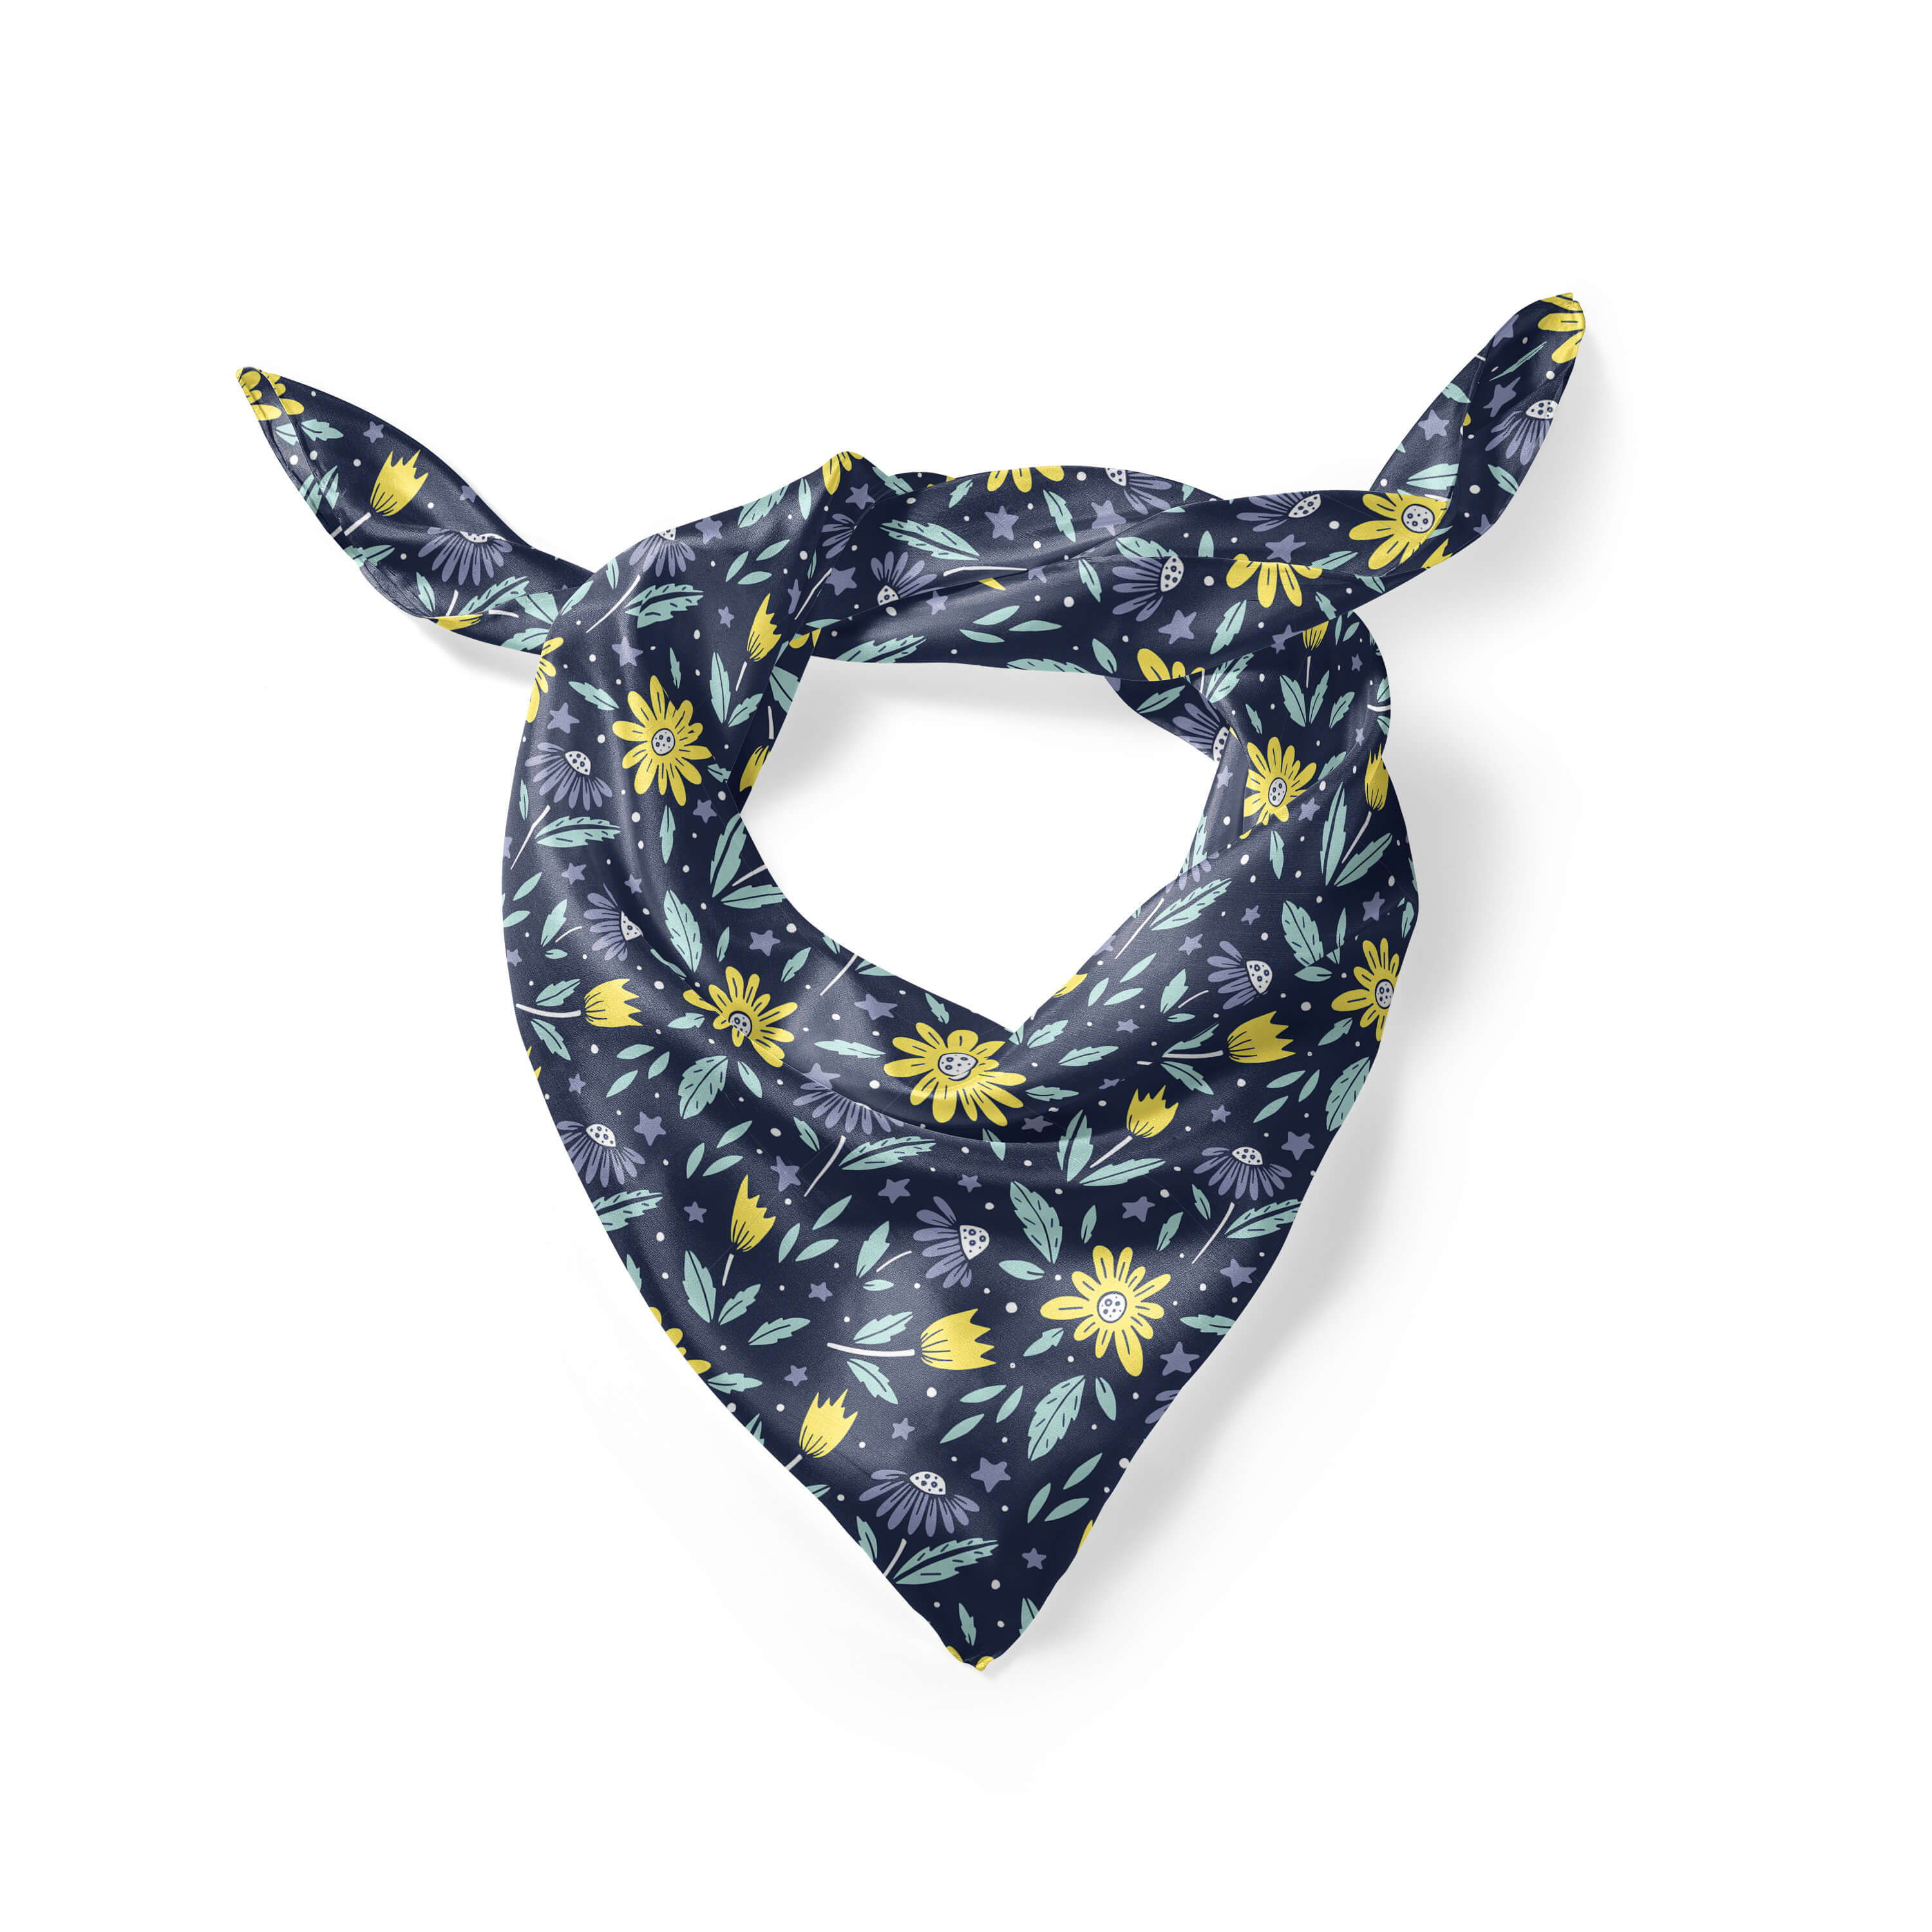 Banana Bandanas Moonflower overripe dog bandana folded photo